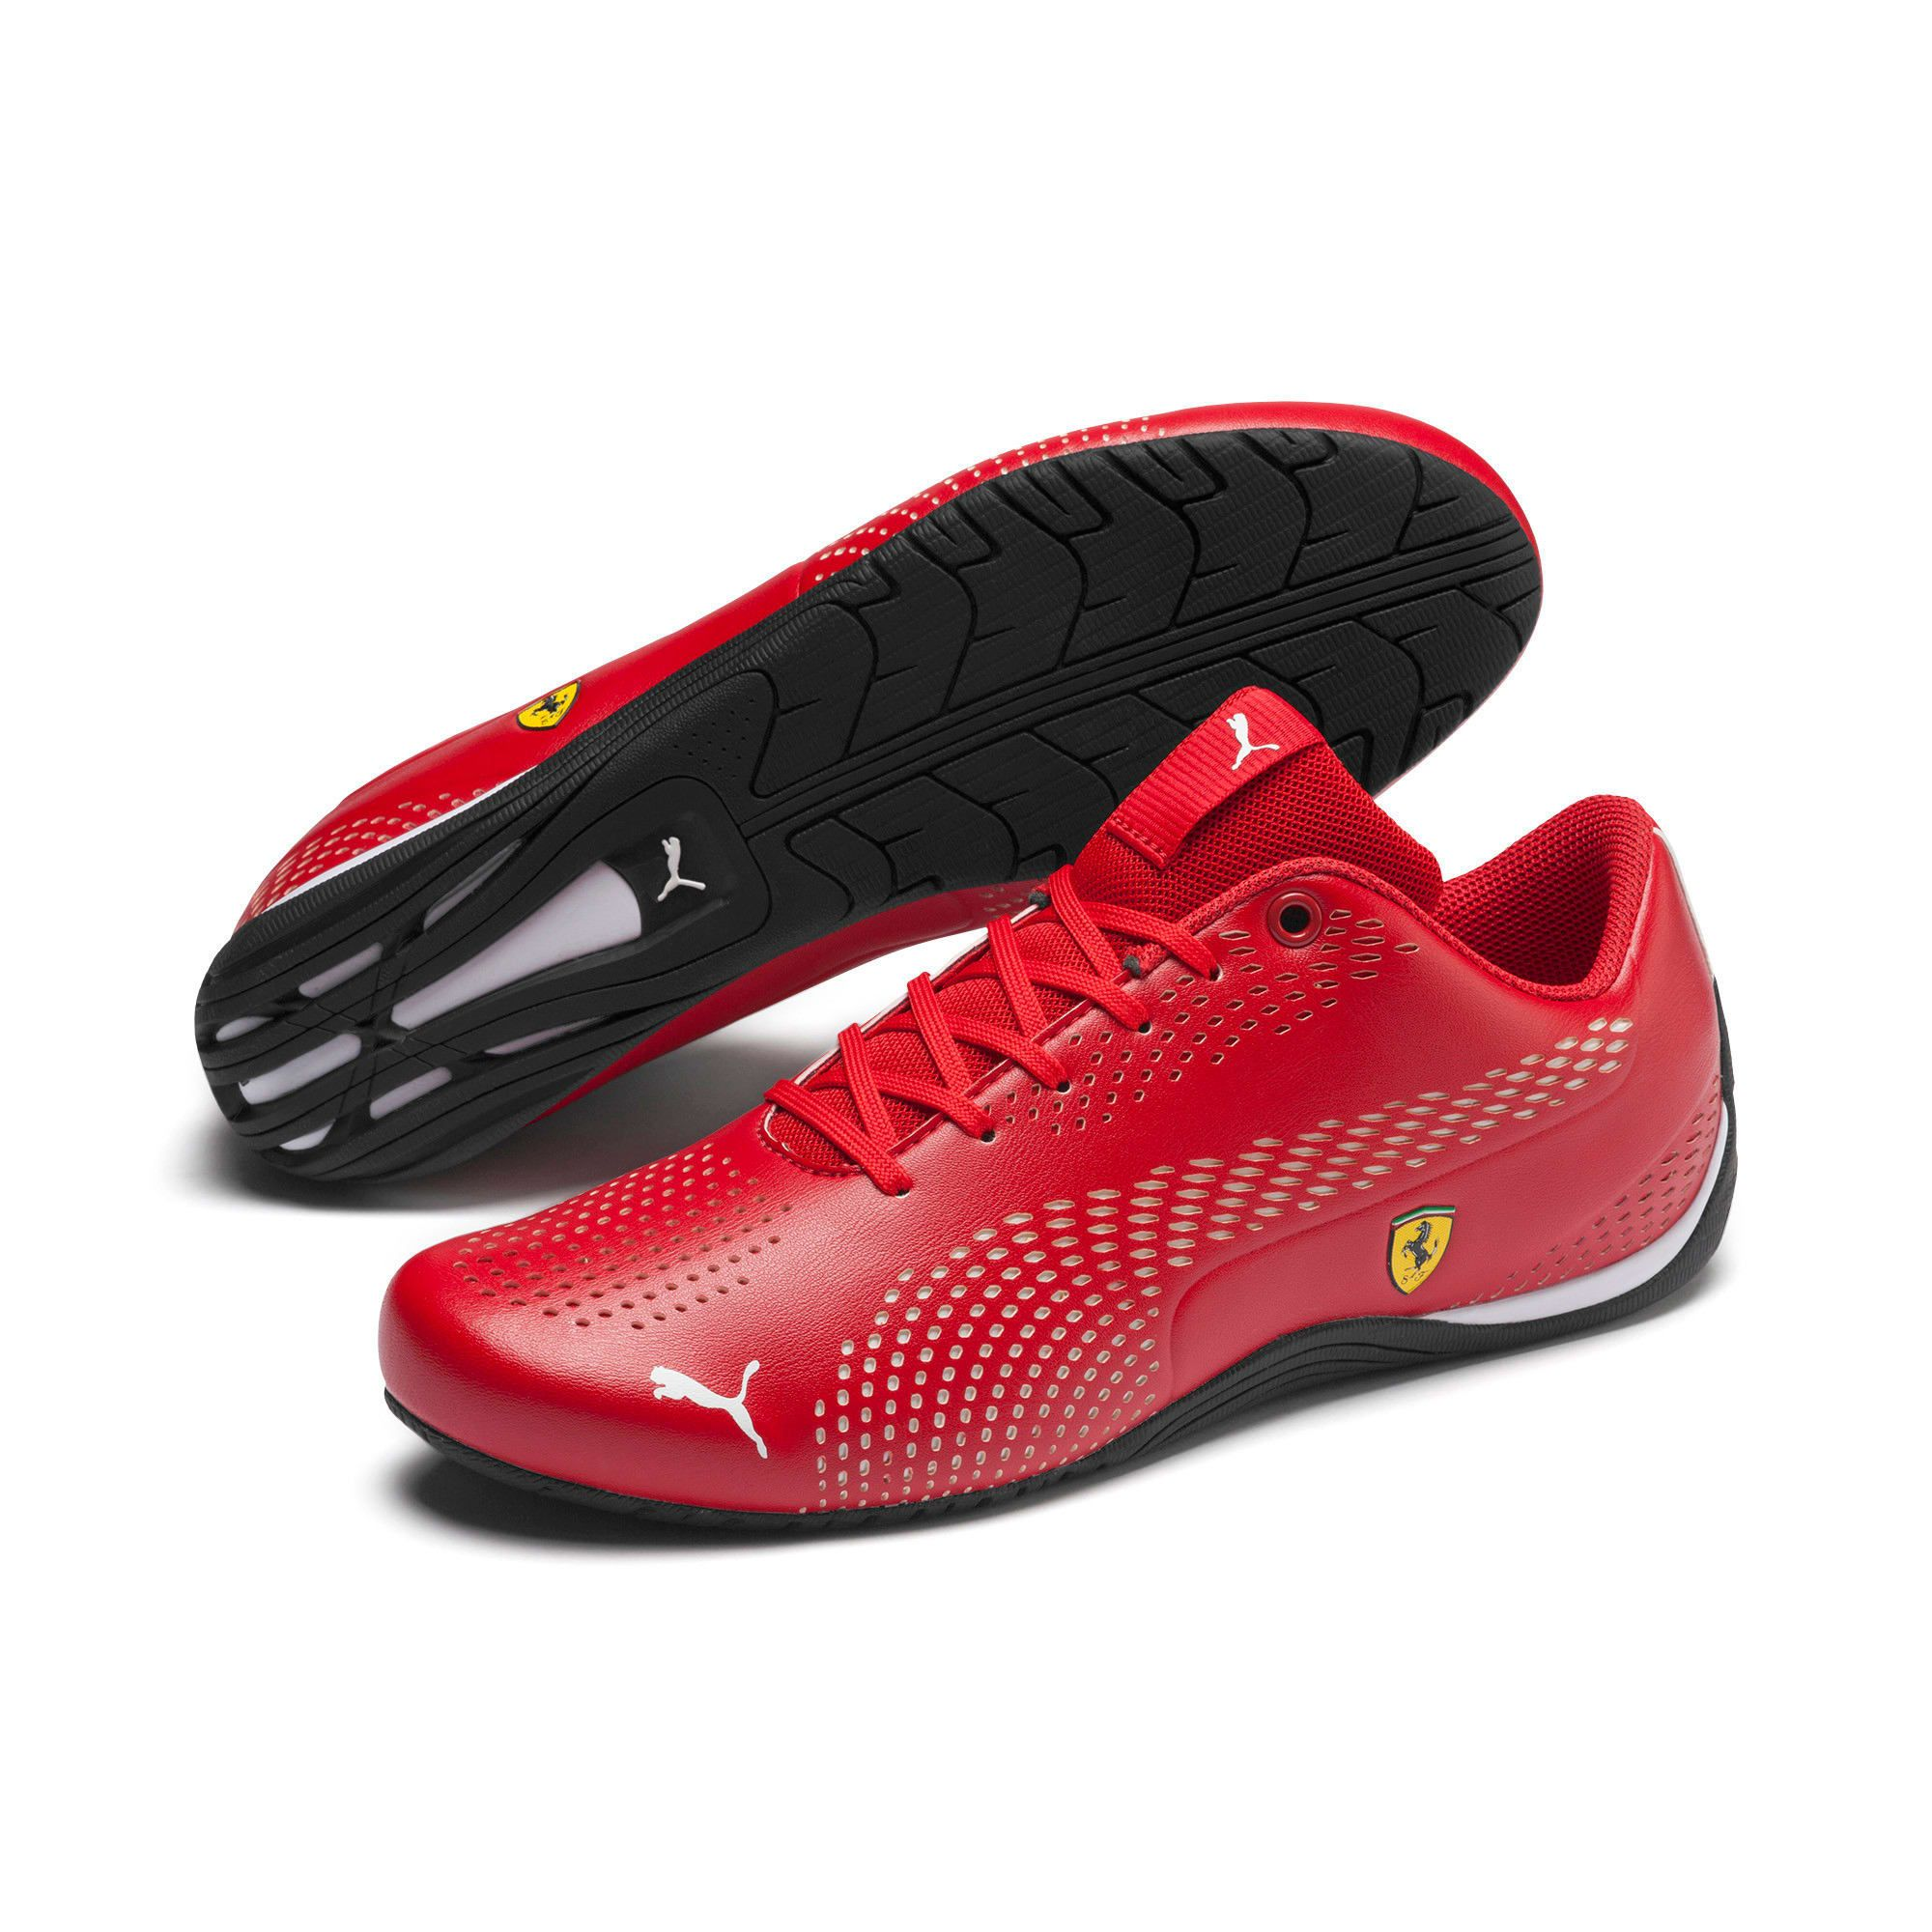 PUMA Ferrari Drift Cat 5 Ultra II Trainers, Red, size 9.5, Clothing